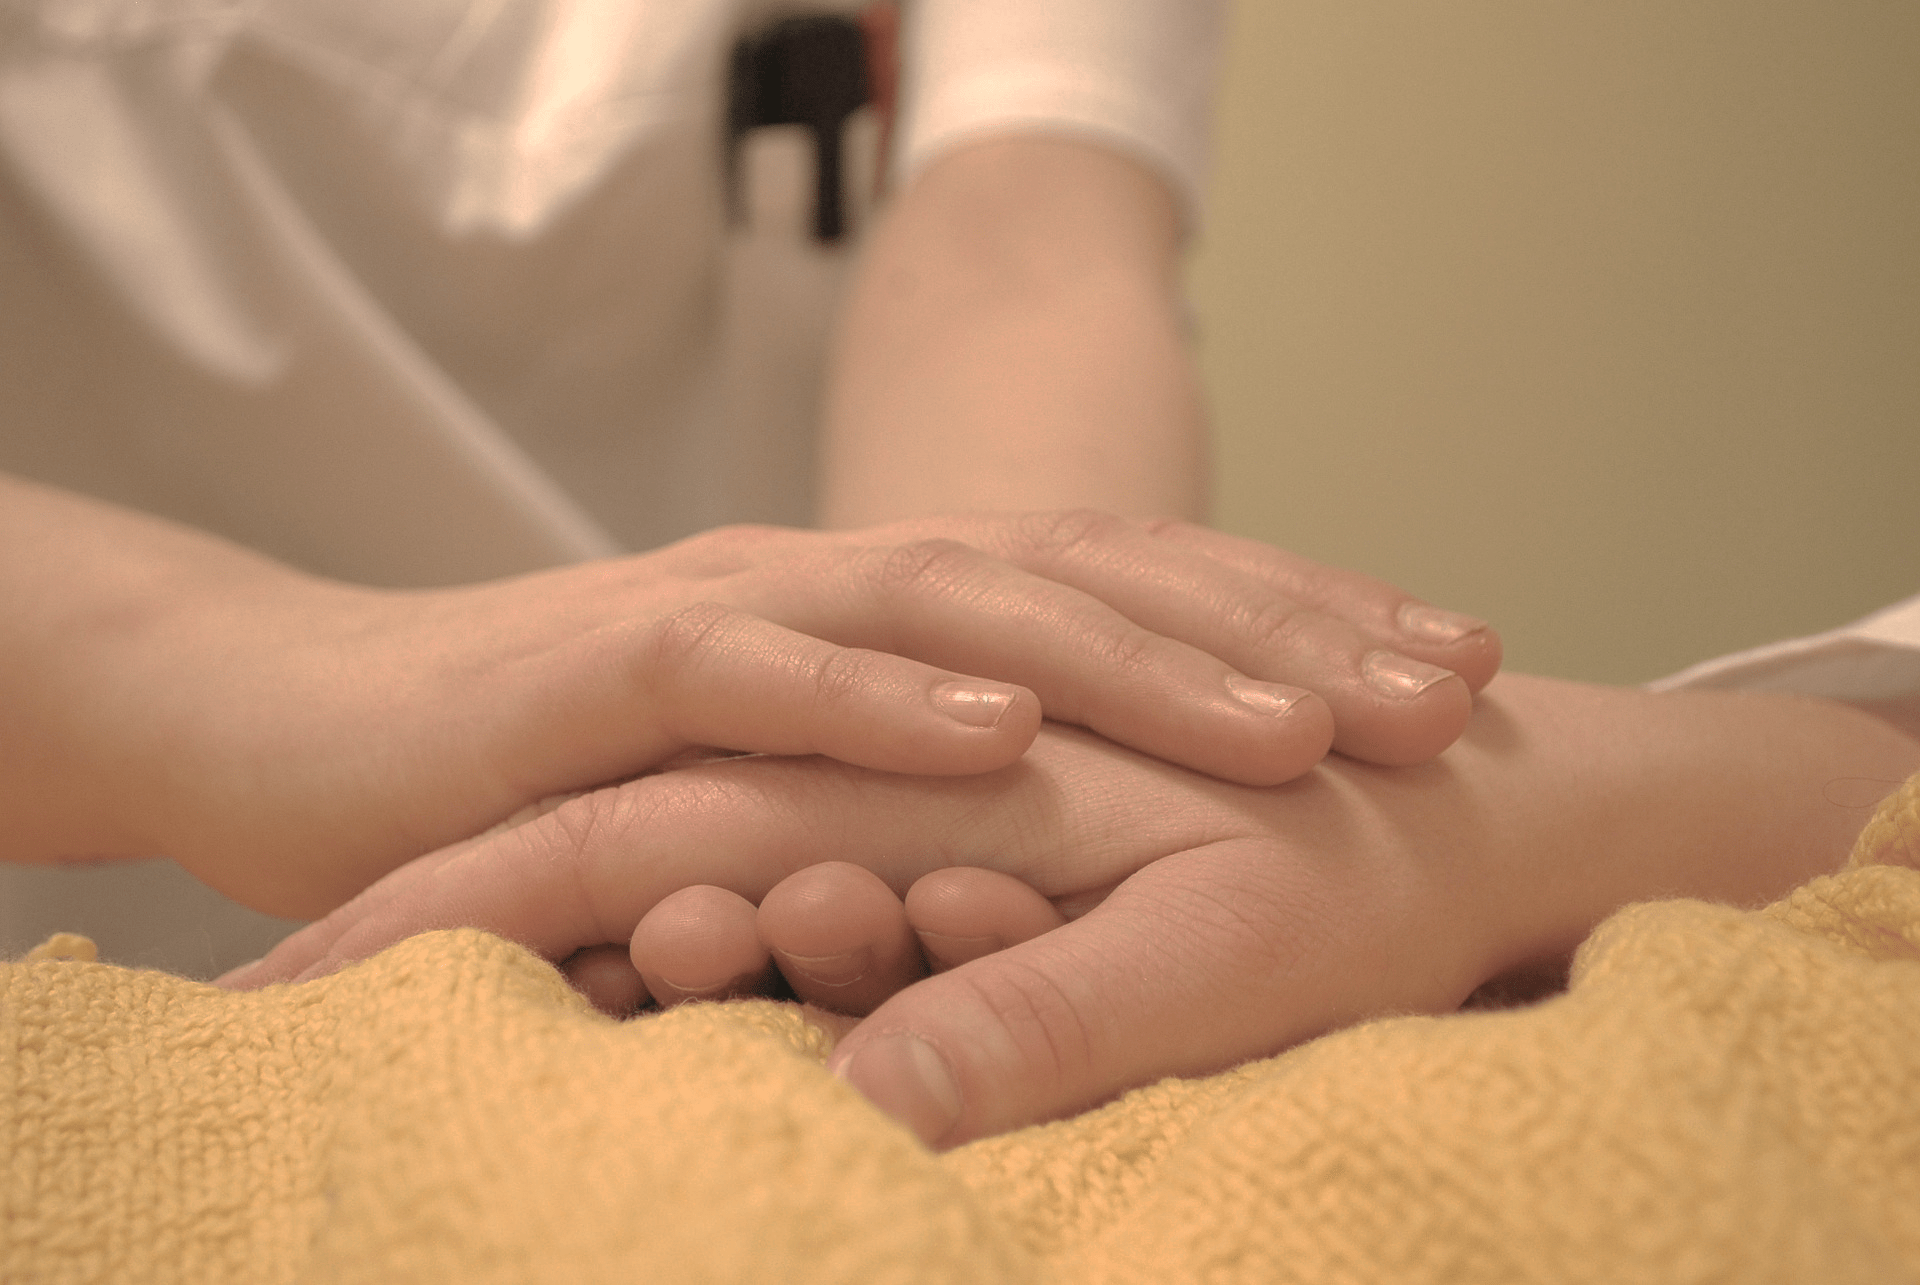 The Importance of Self-Care for Caretakers